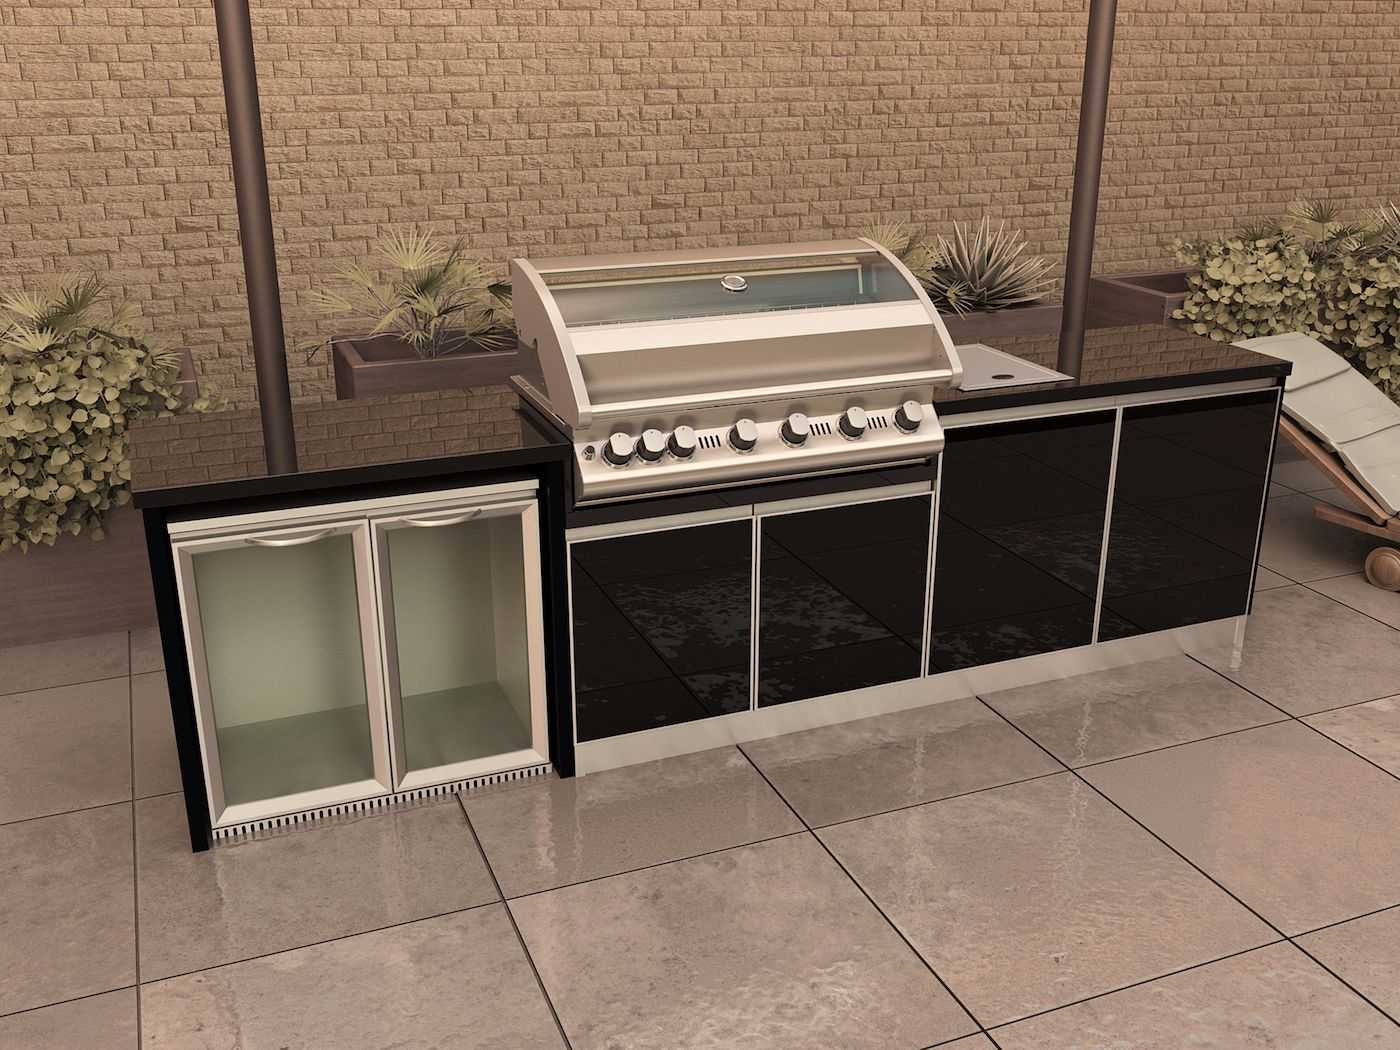 Including Sunco Sc61p Bbq Sunco 200l Fridge Cabinet Ask About Our Beefeater Bbq Upgrade Option Features Pool Shapes Adjustable Shelving Beefeater Bbq